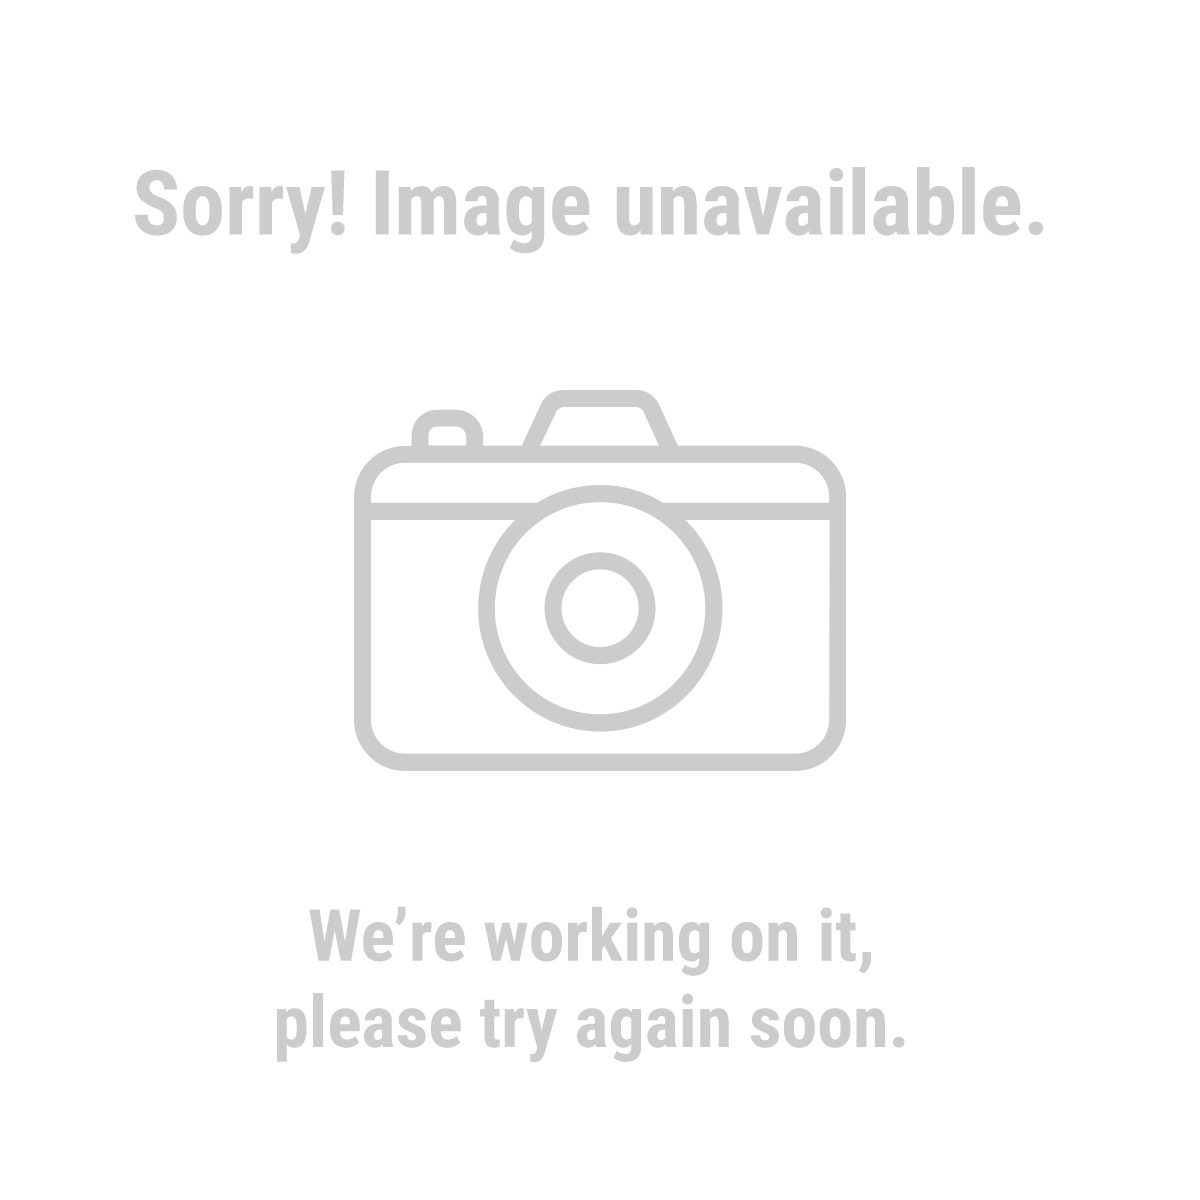 Greenwood® 61906 3/4 in. x 100 ft. Commercial Duty Garden Hose